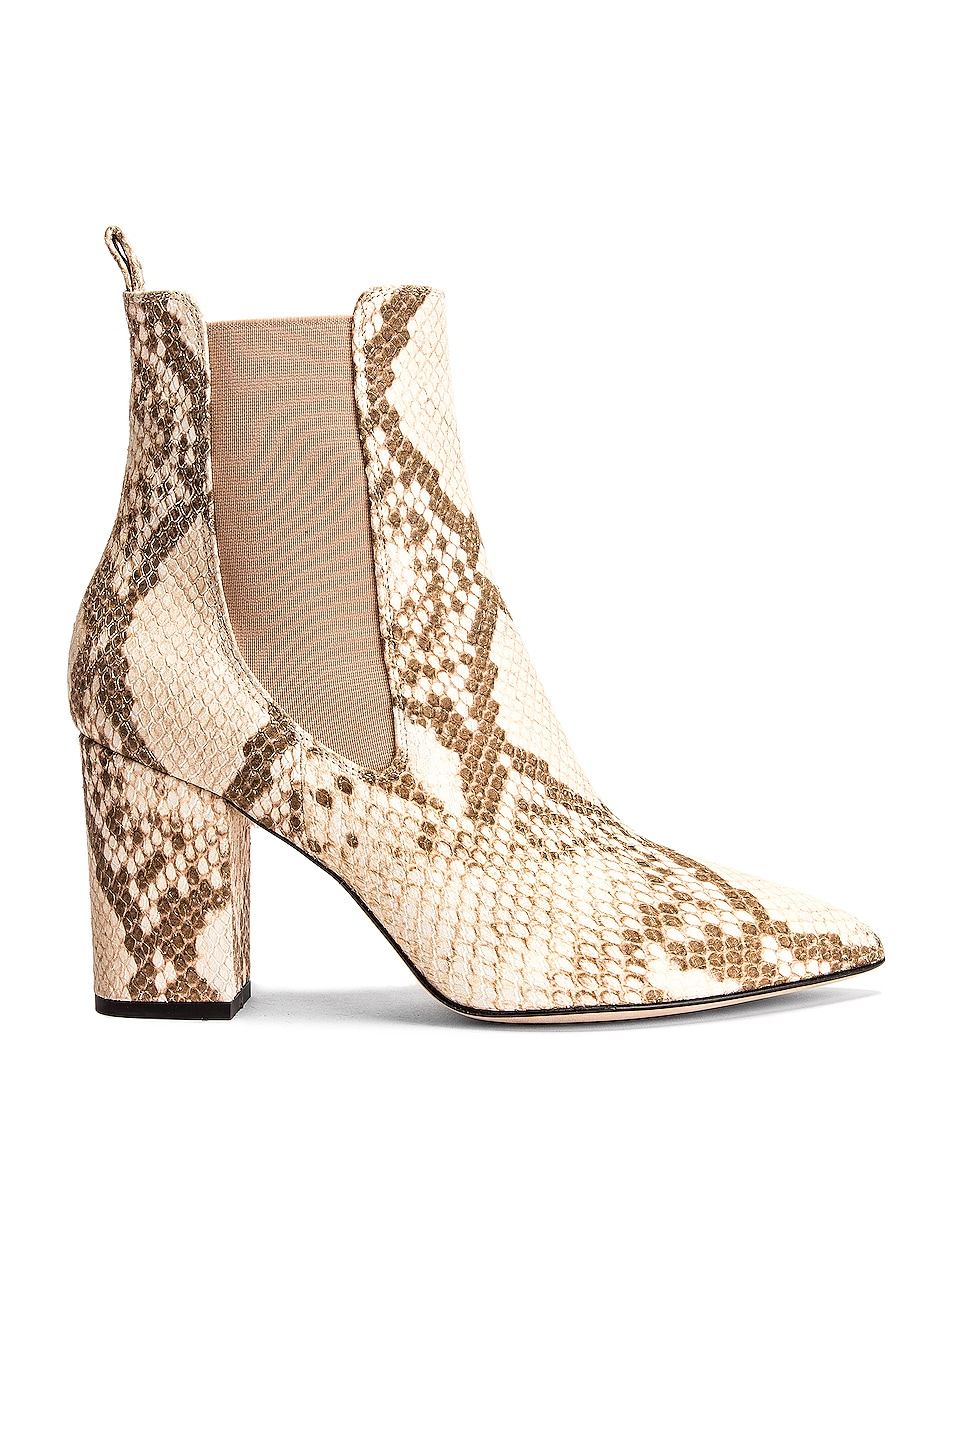 Image 1 of Paris Texas Faded Python Print Ankle Boot in Faded Milk